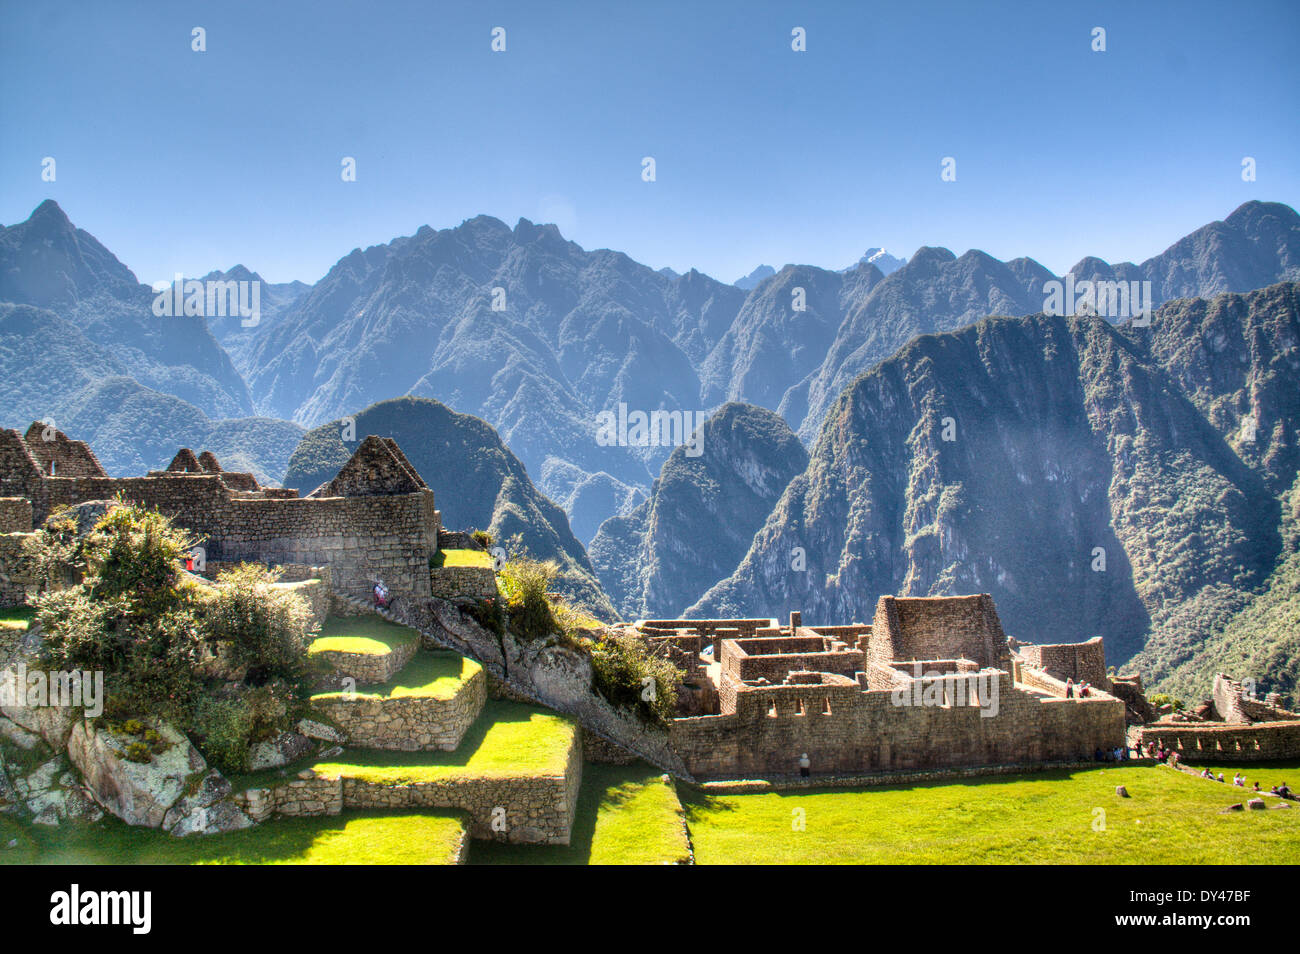 Machu Picchu in the sacred valley of Peru - Stock Image